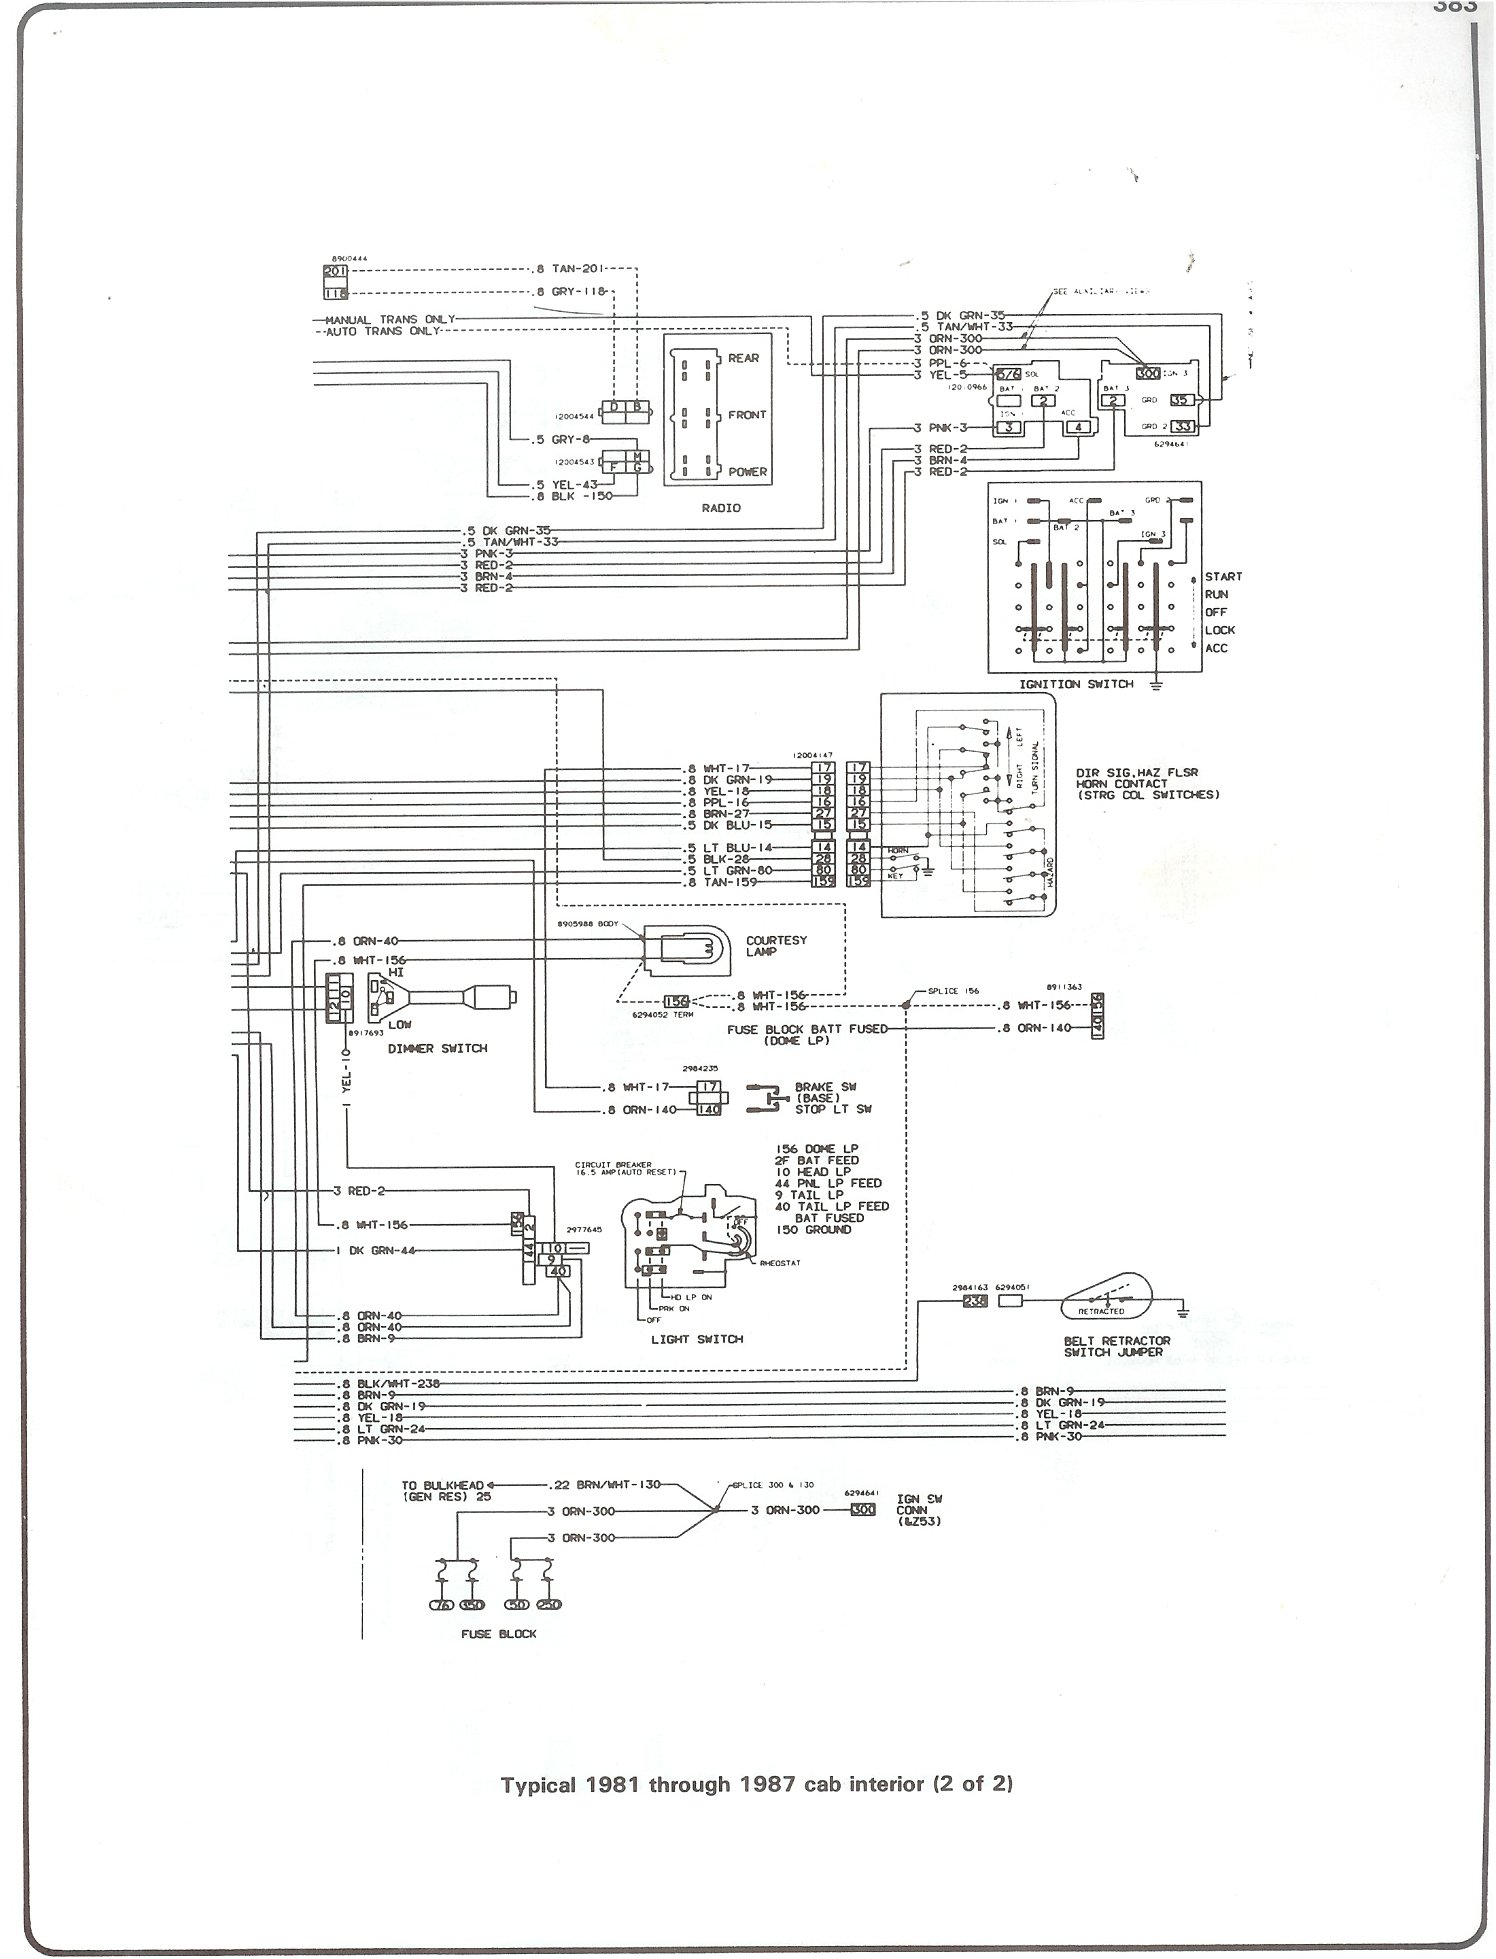 [DIAGRAM_38ZD]  64D42 65 Chevy Truck Fuse Block Wiring Diagram For C30 | Wiring Library | 1985 C30 Vacuum Diagram Wiring Schematic |  | Wiring Library